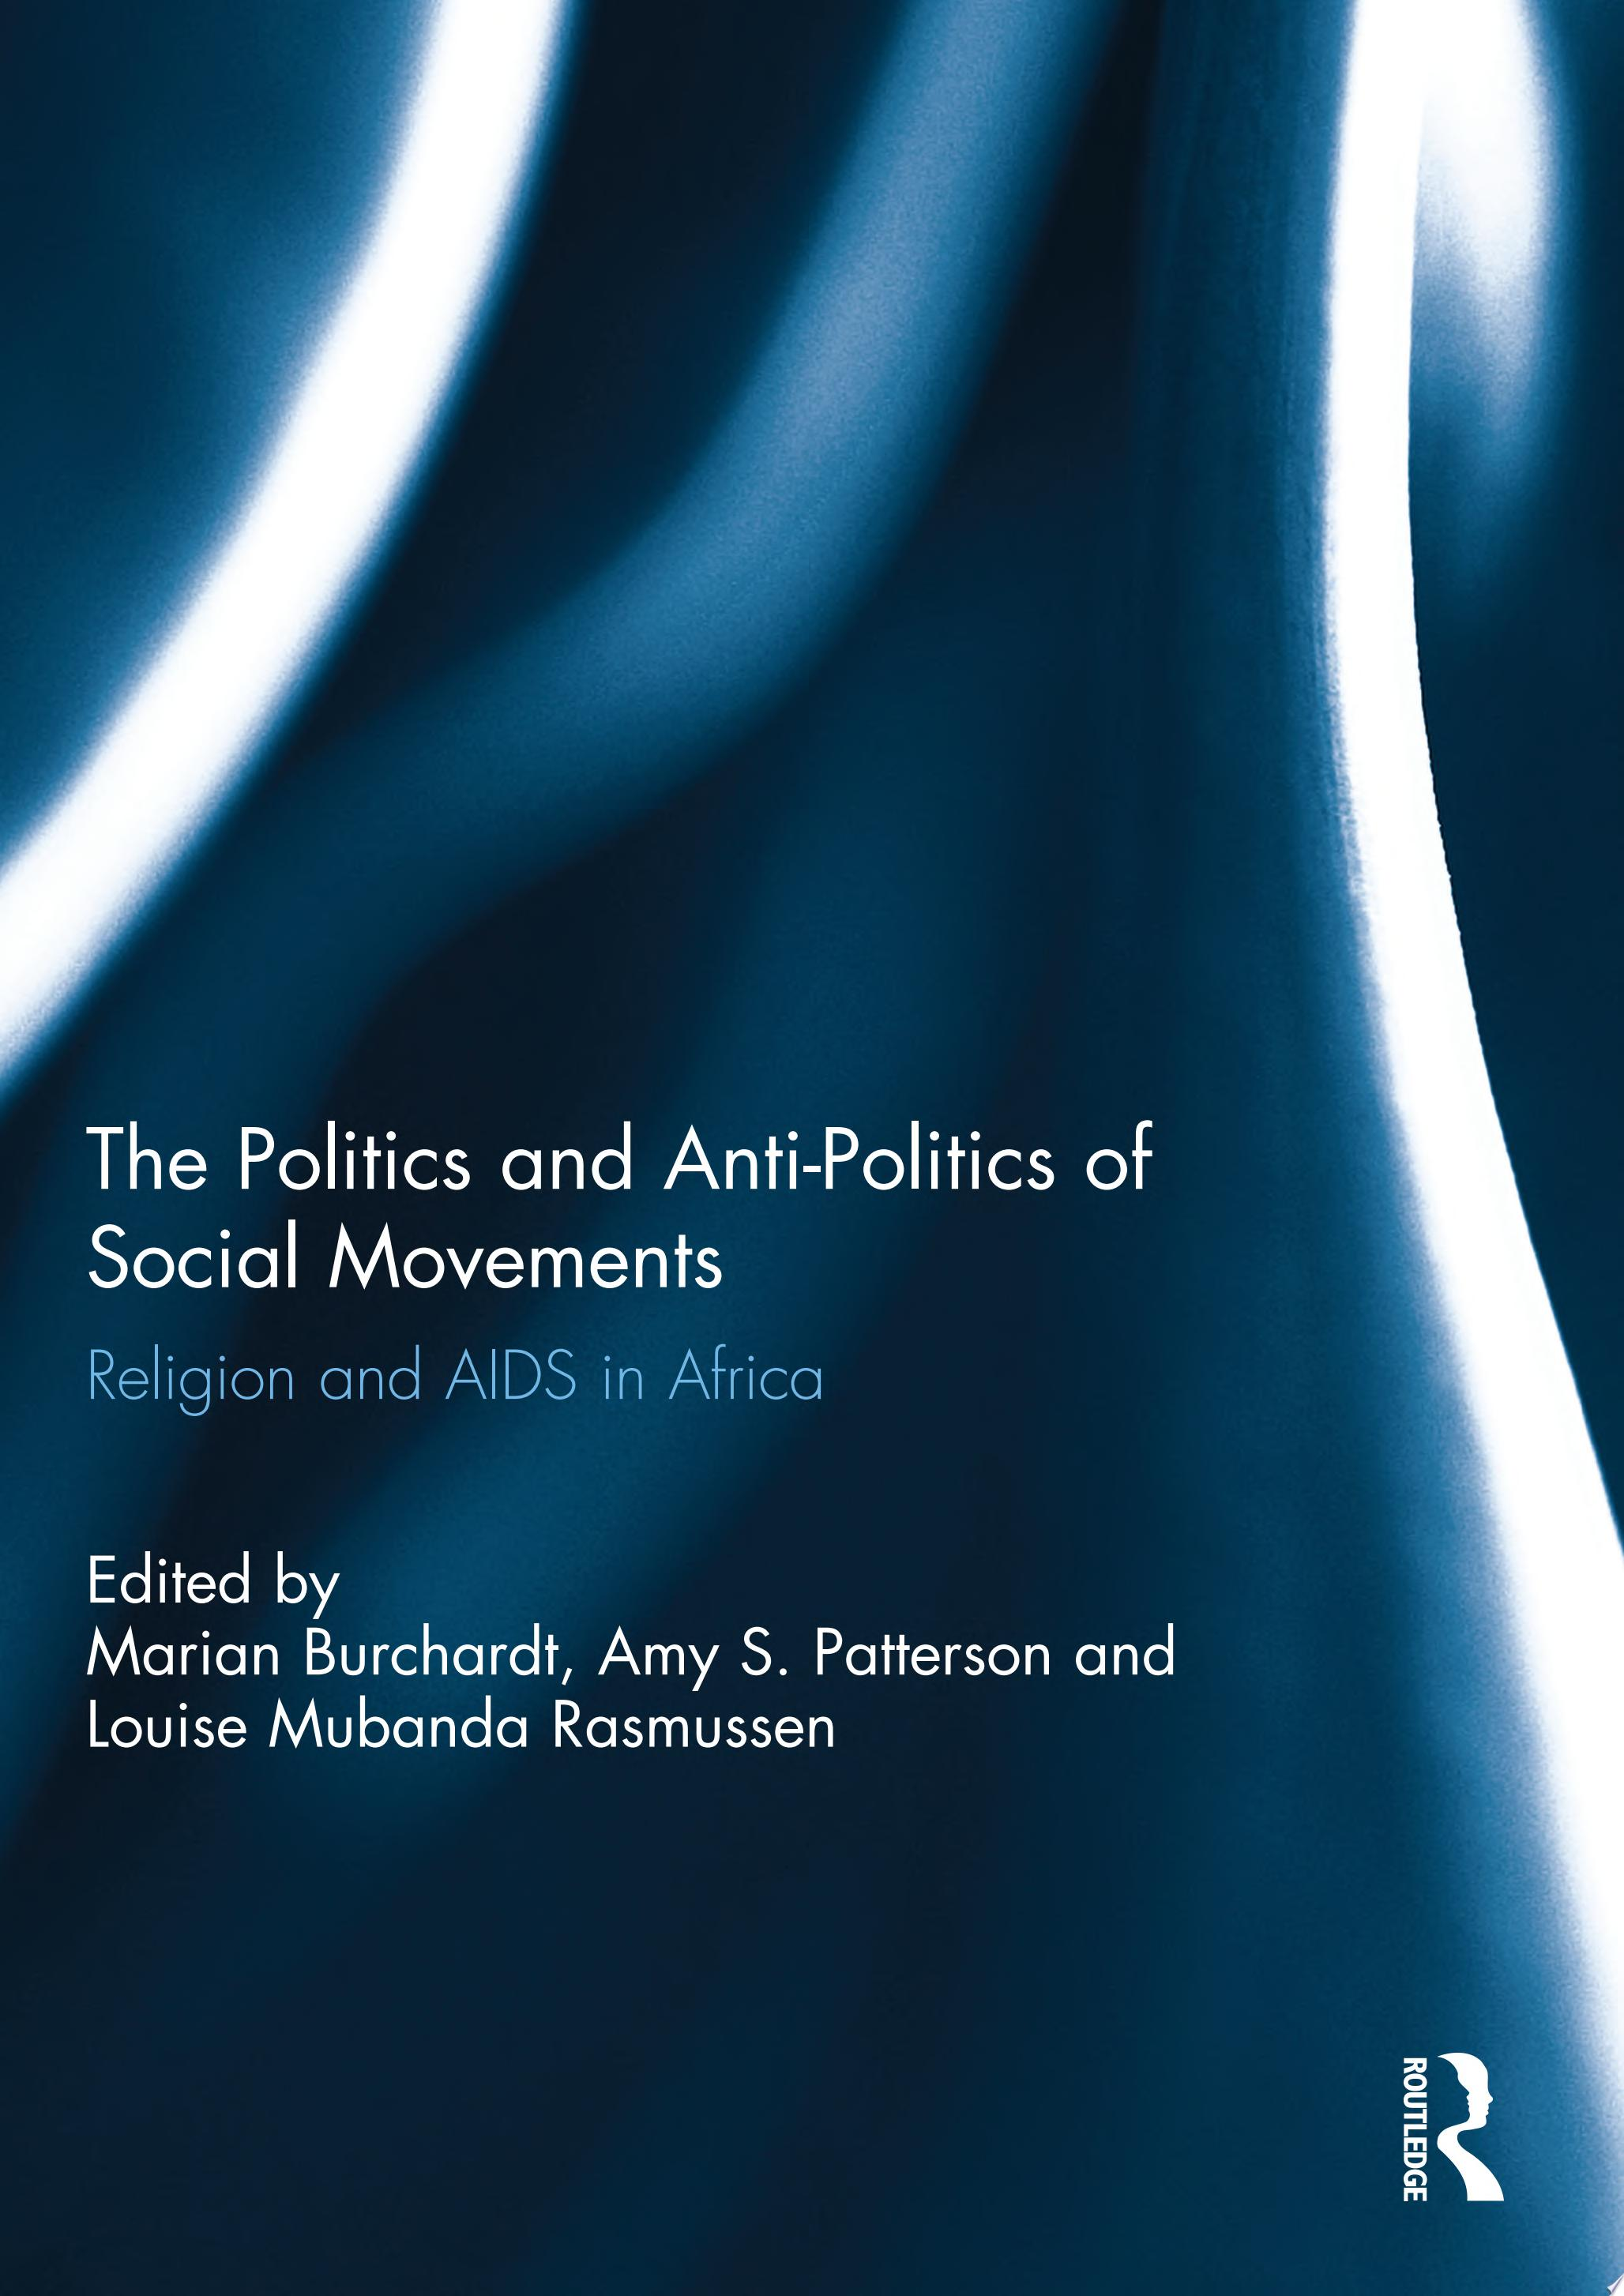 The Politics and Anti Politics of Social Movements